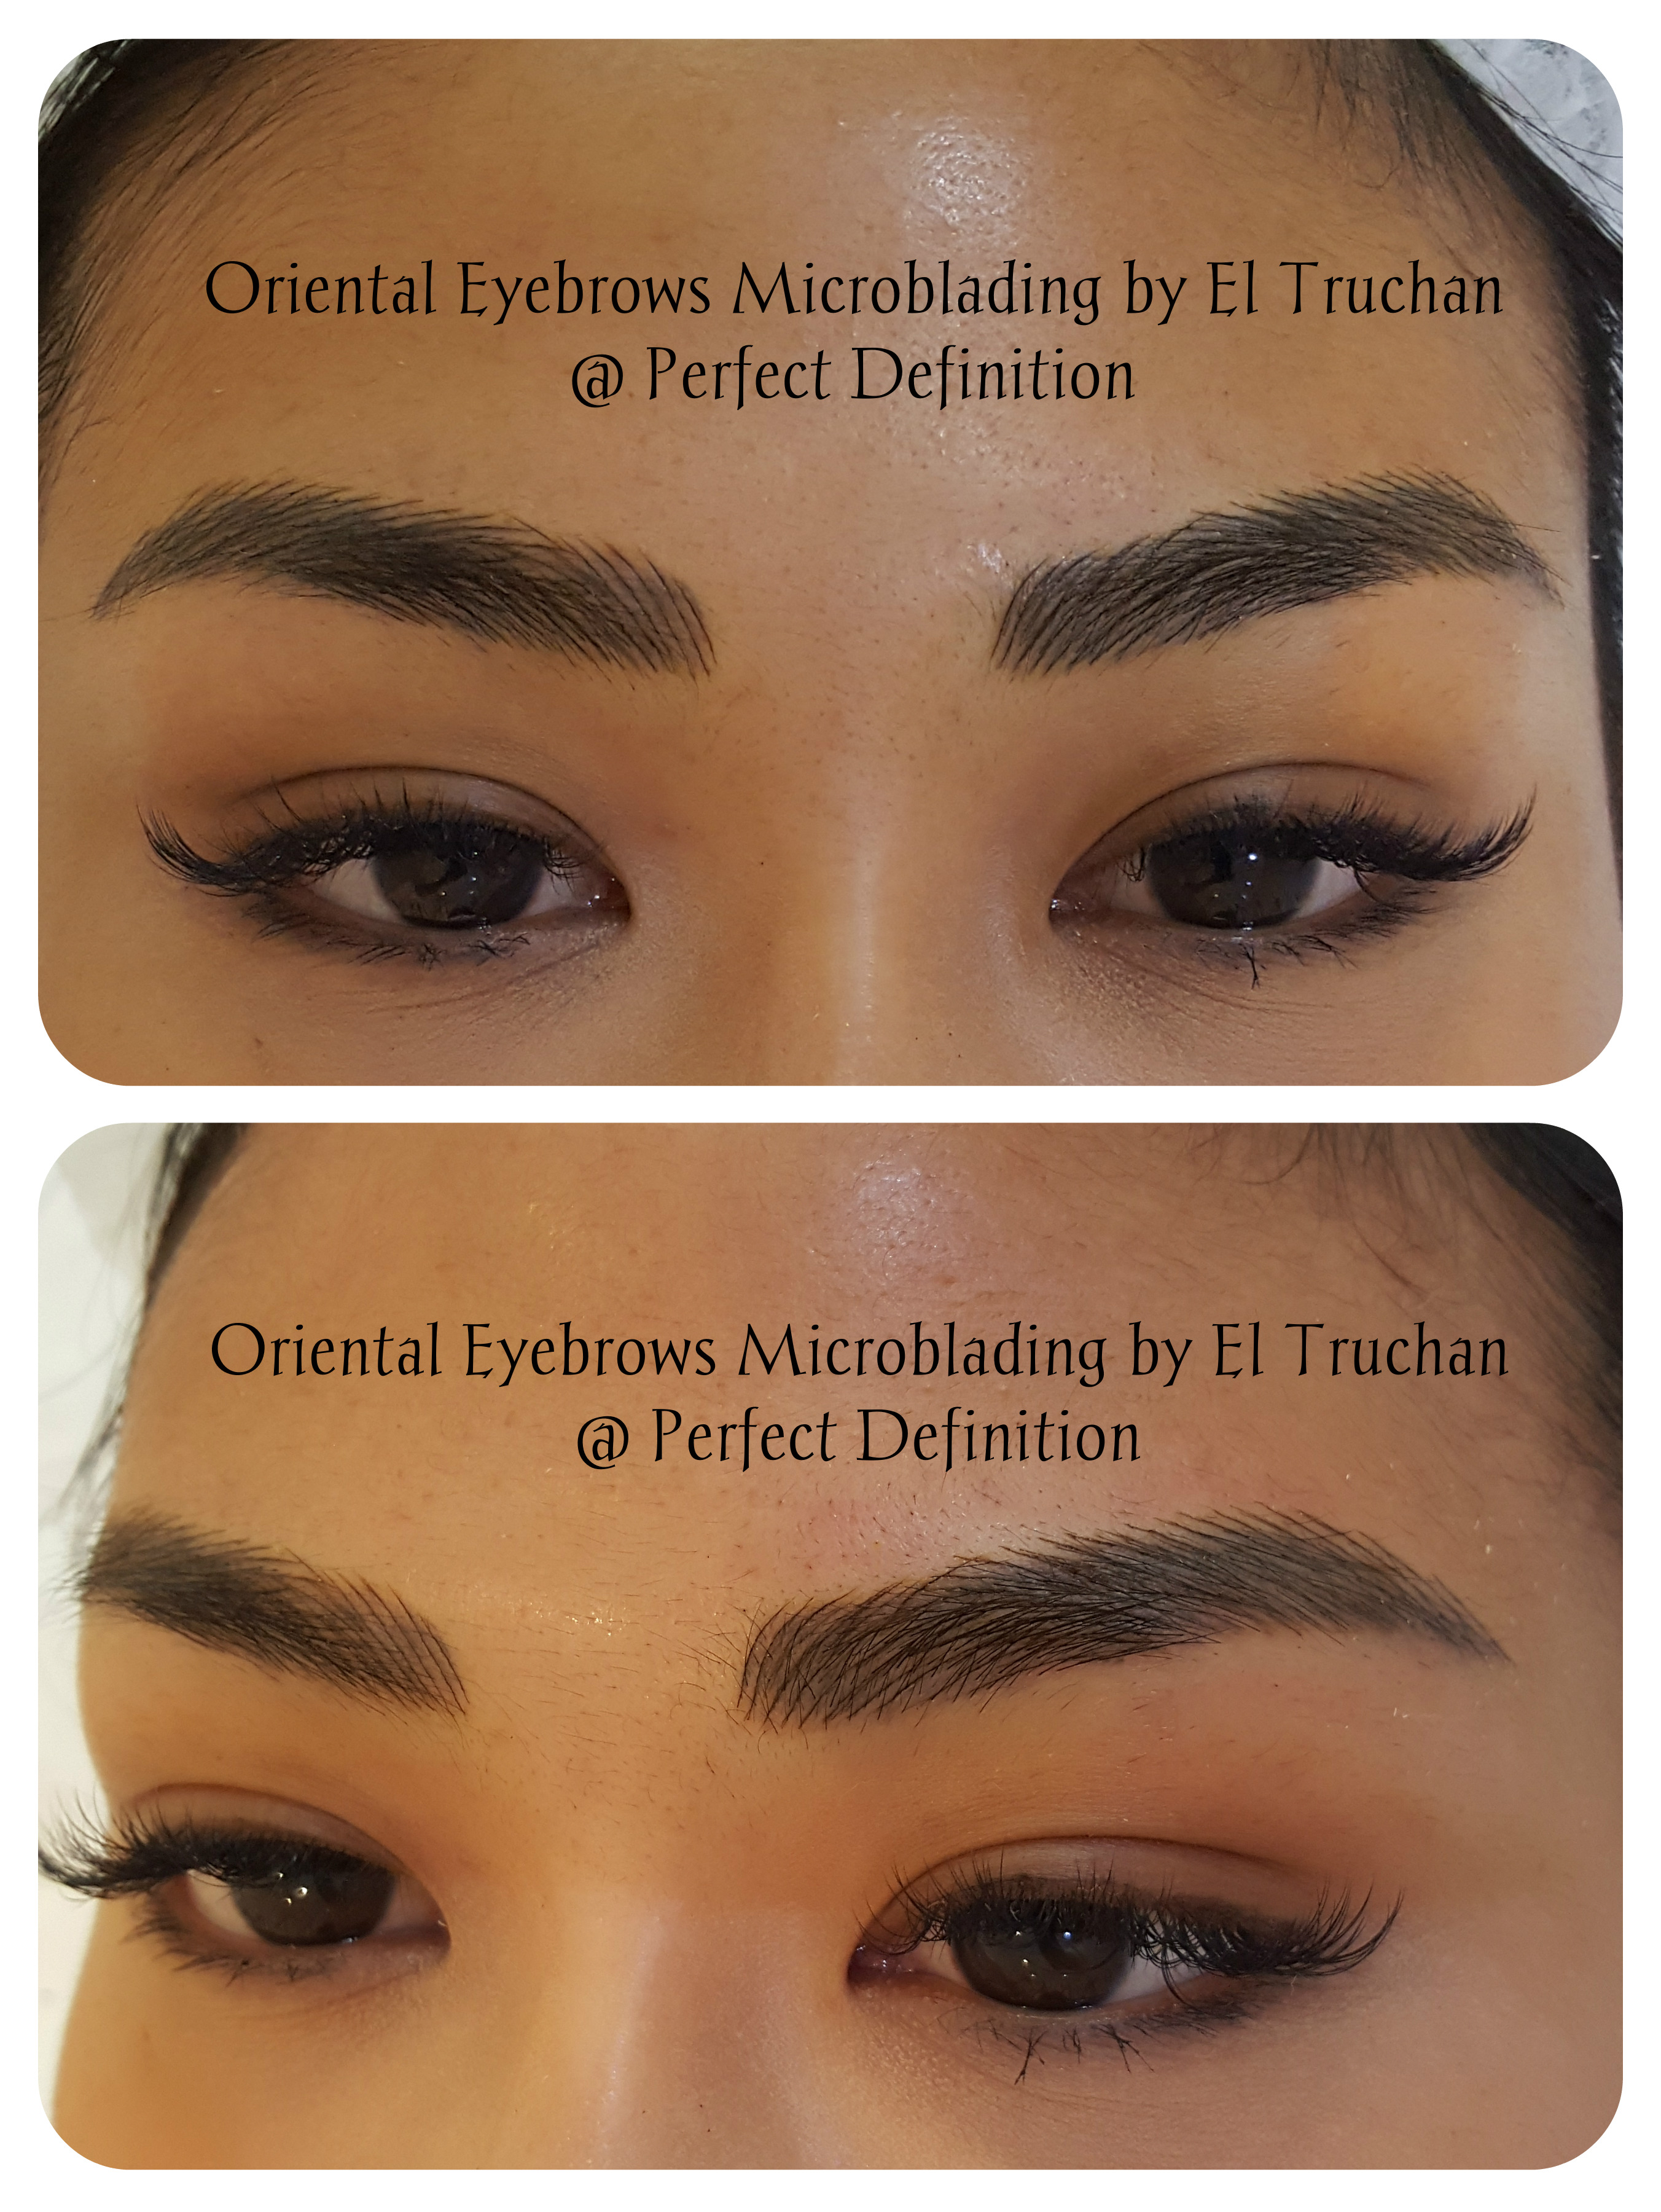 Oriental Eyebrows microblading by El Truchan in London _ Perfect Definition001